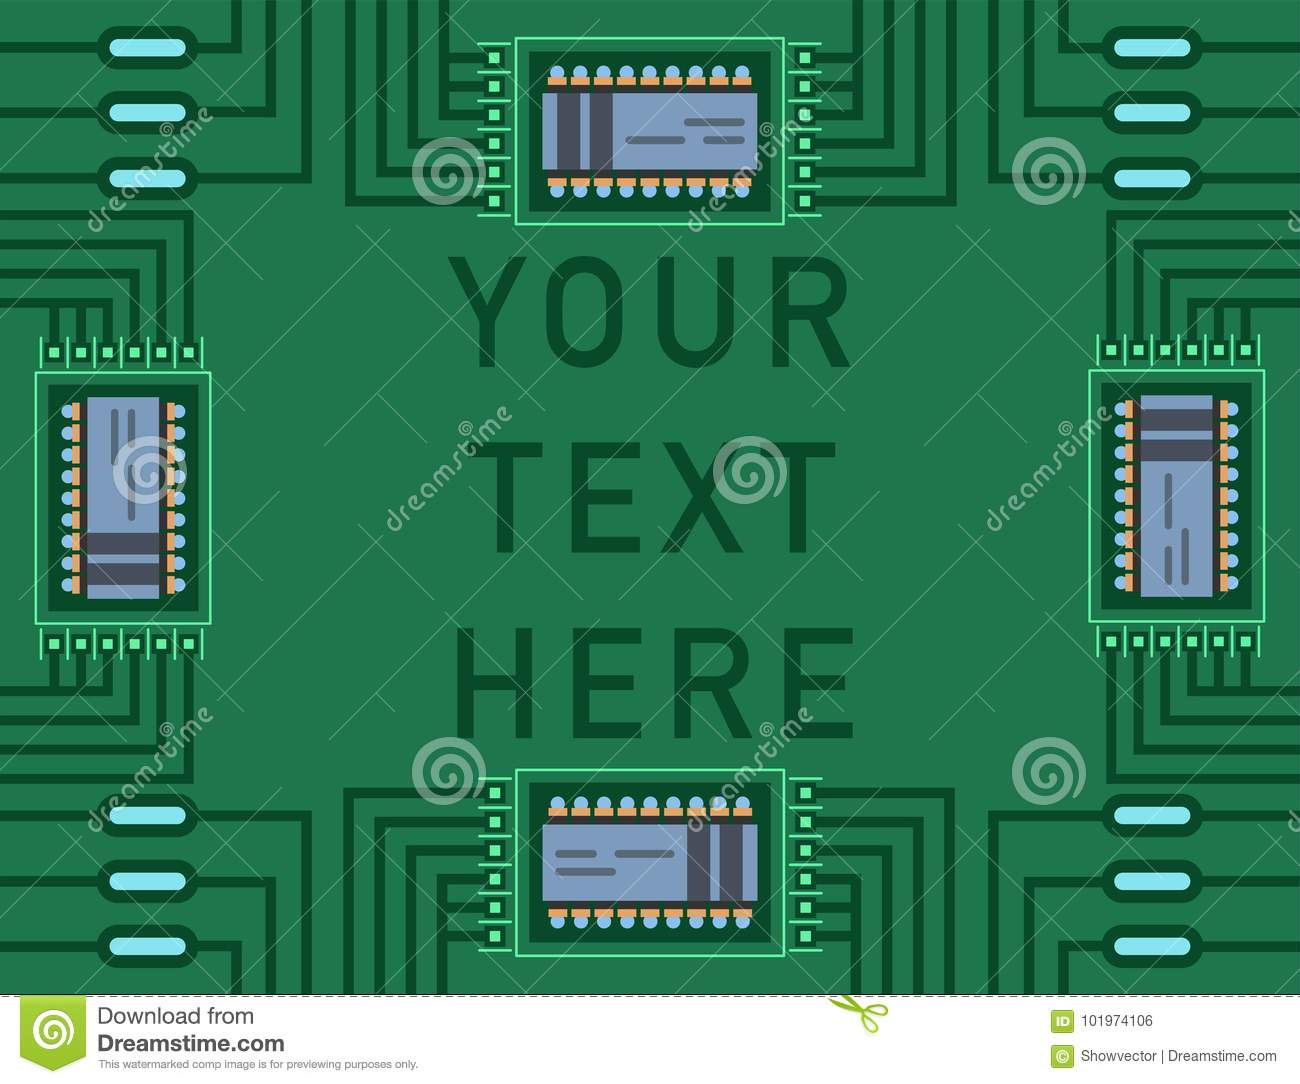 Computer Ic Chip Template Microchip On Detailed Printed Circuit Electronic Board Design Abstract Background Vector Illustration